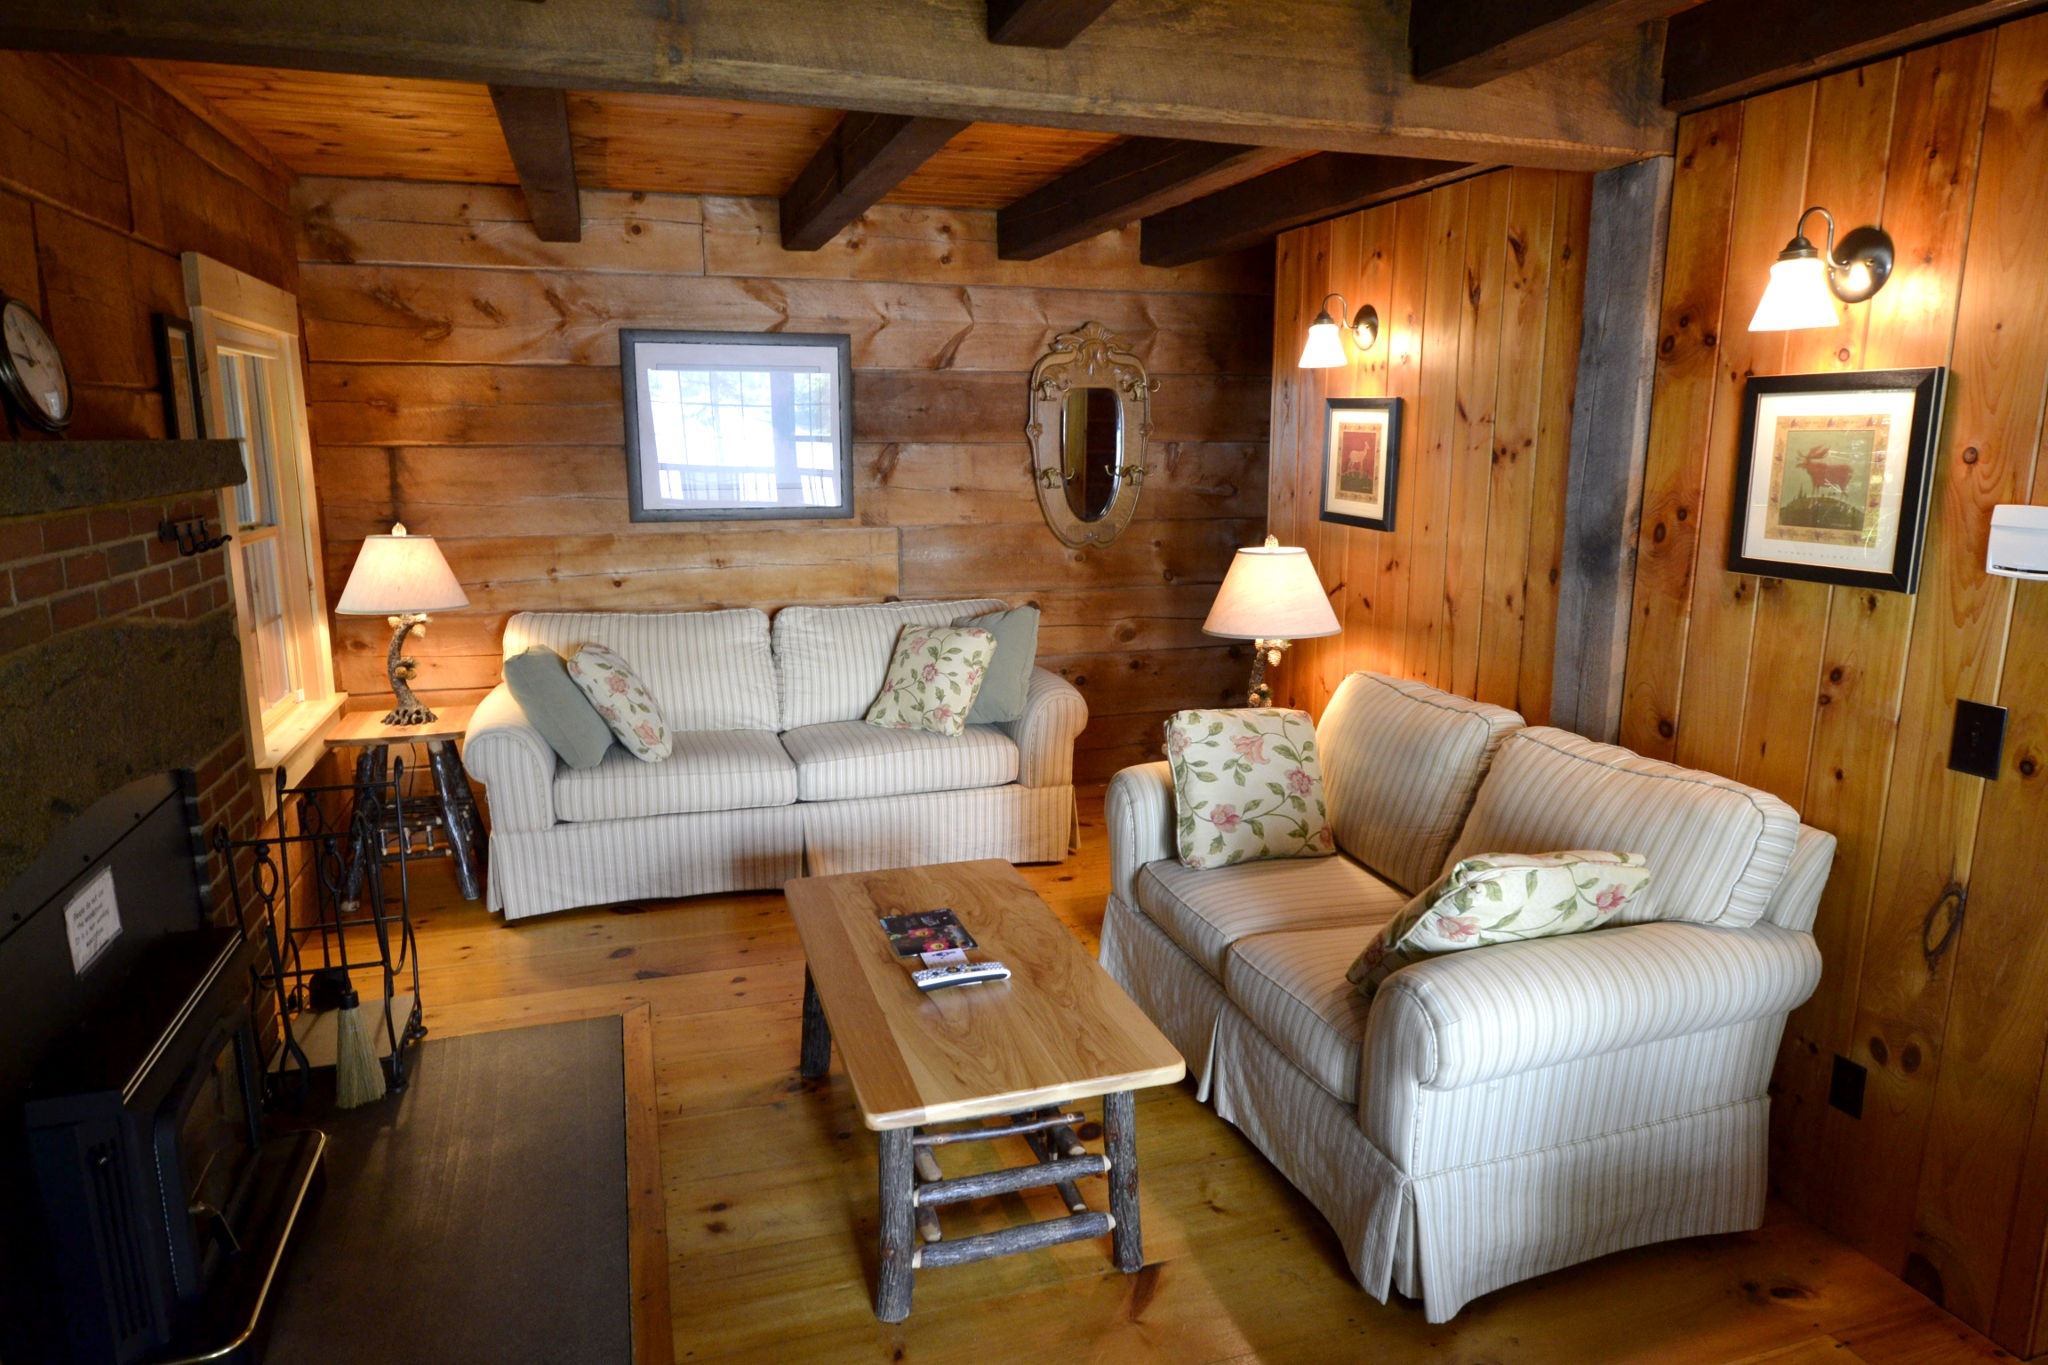 crossed tripadvisor of experience romantic cabins impression an won that thought here destinations your nh leave these have popular never in cabin rental fever not sure vacationrentalsblog but t vacations mind you to are might